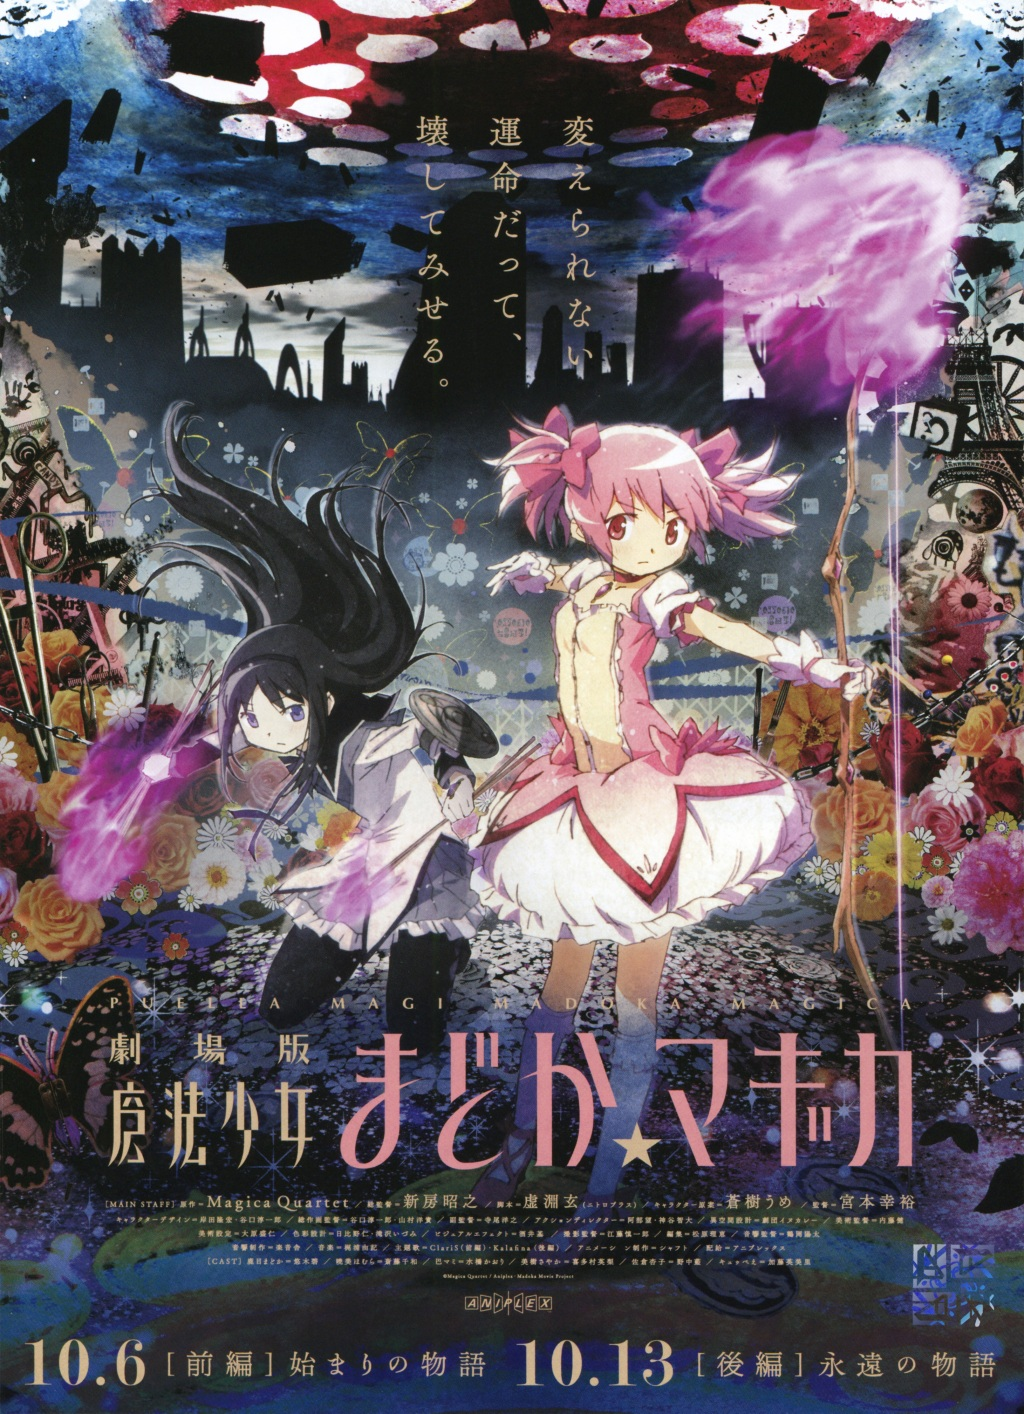 I Was Looking At The Poster For 2nd Madoka Magica Movie And Noticed This Isnt Holding Bow Backwards